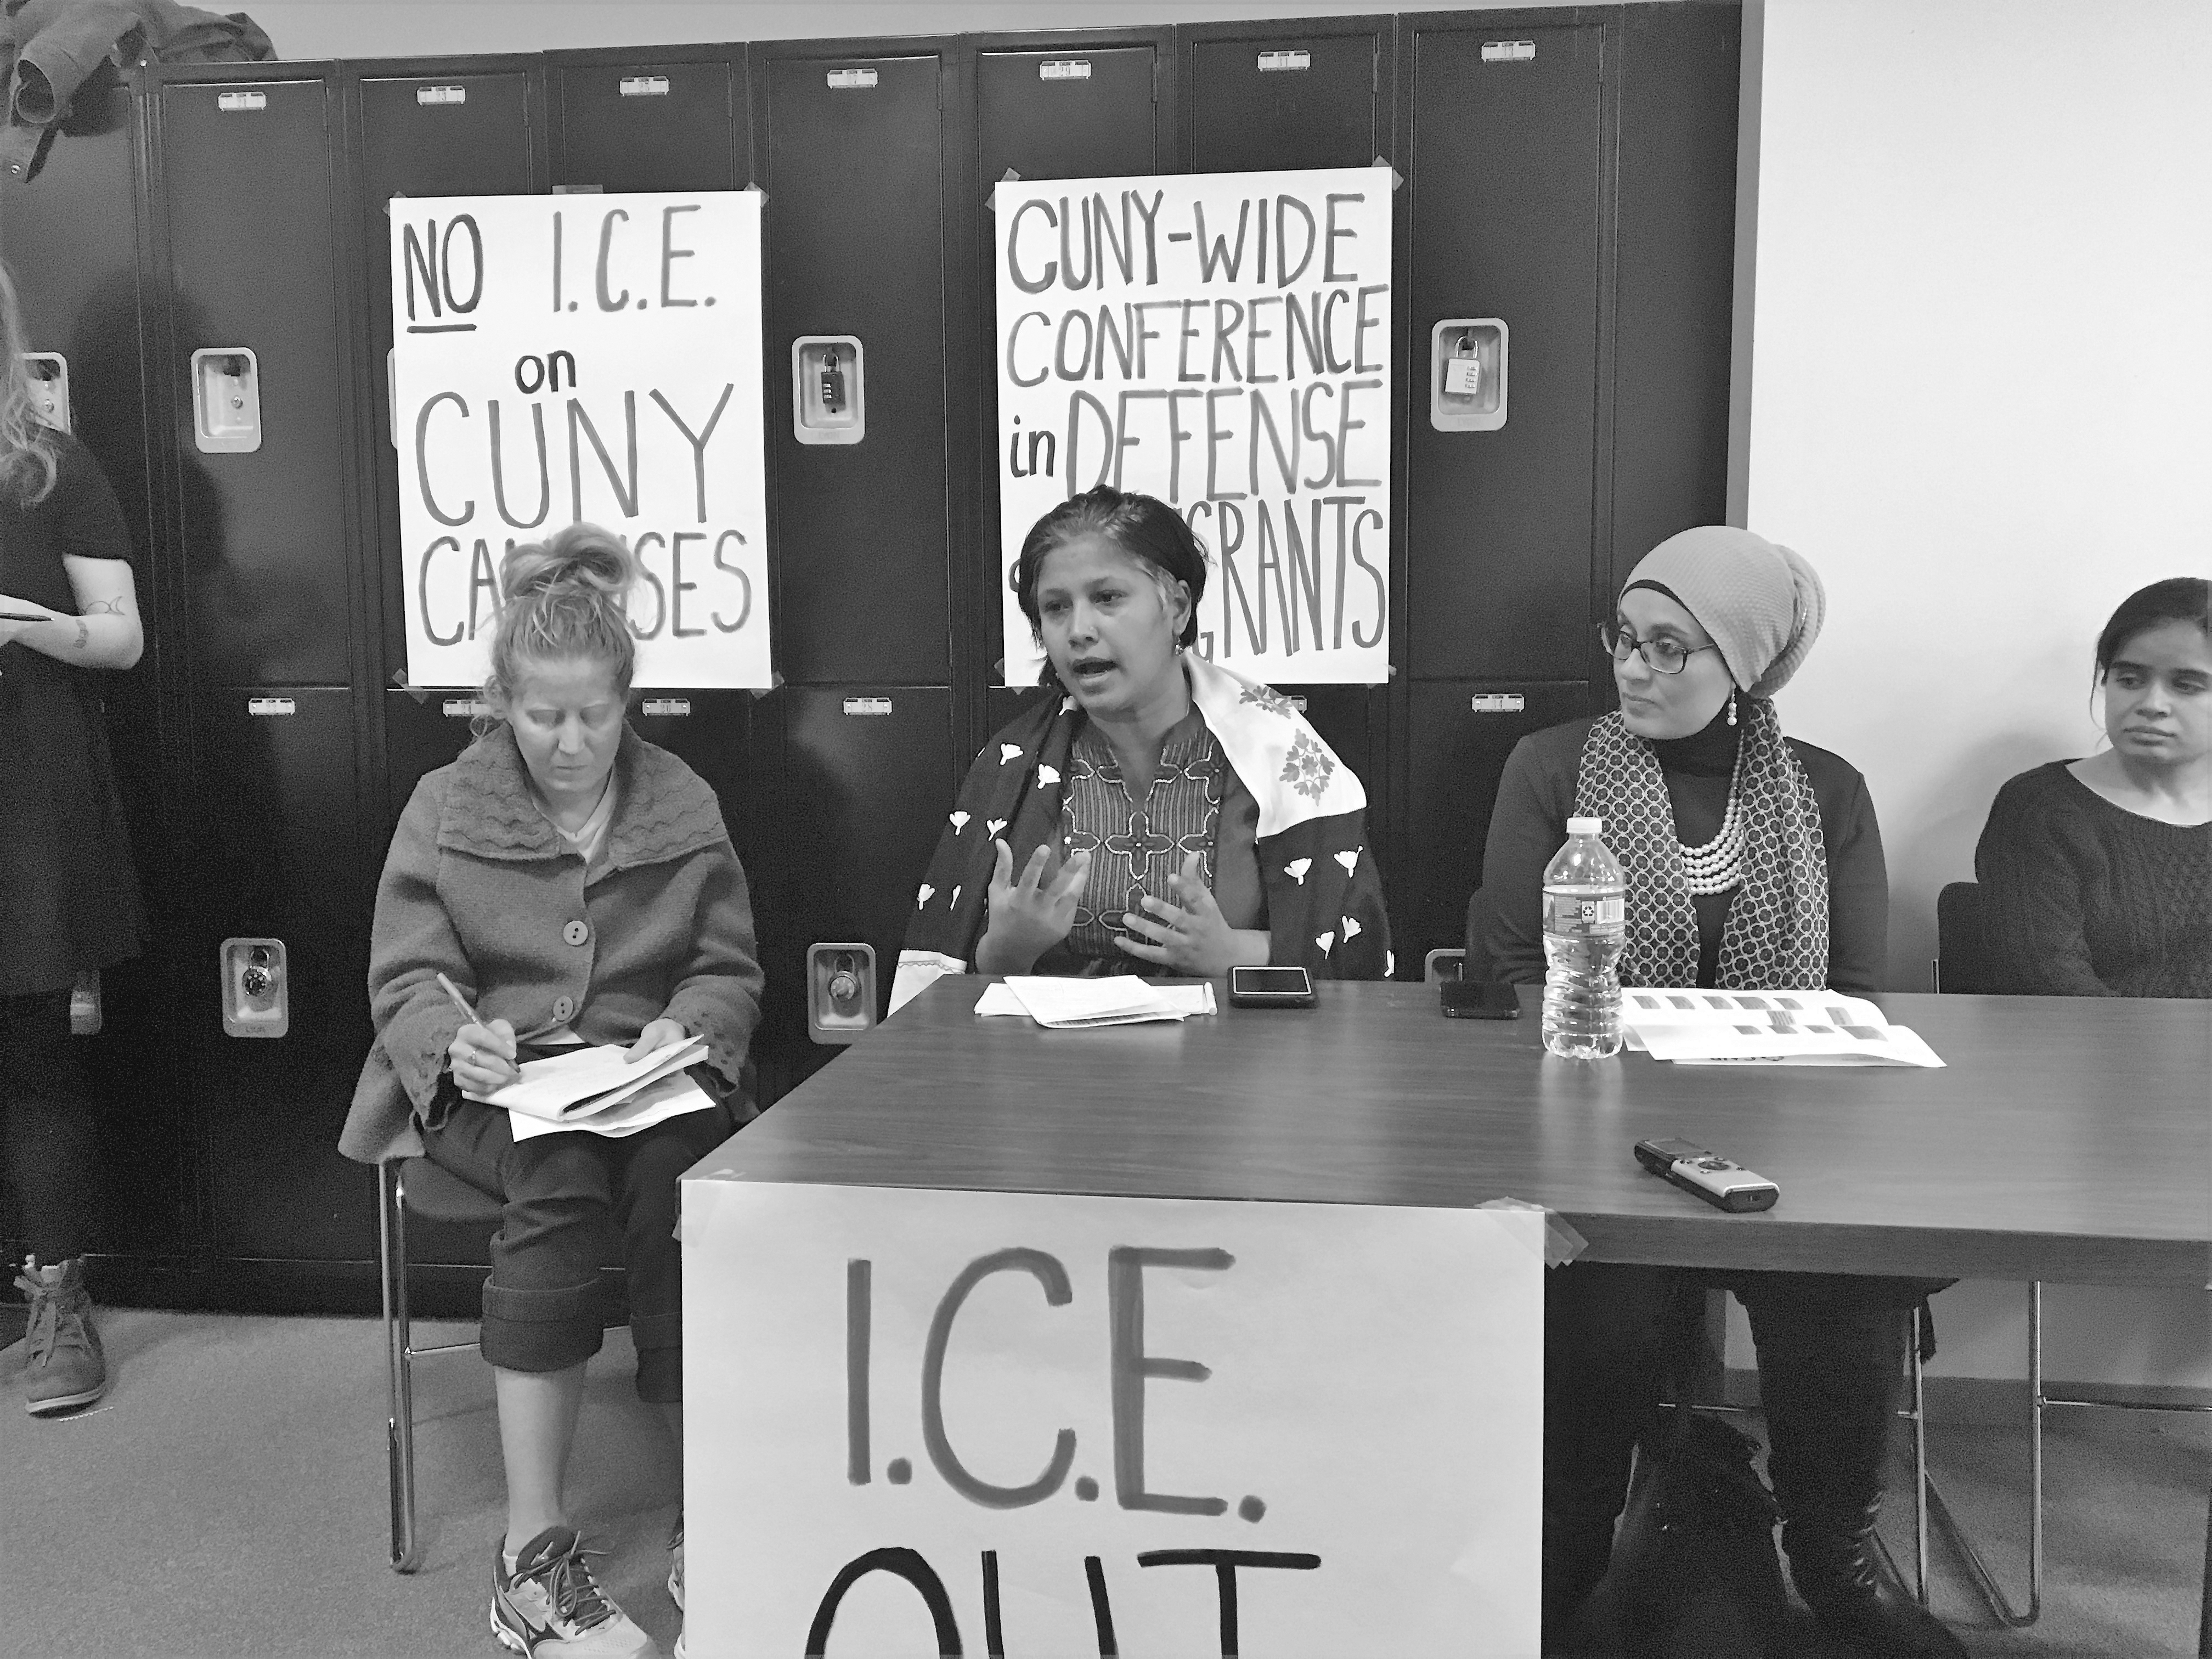 CUNY-Wide Conference in Defense of Immigrants Held at Grad Center